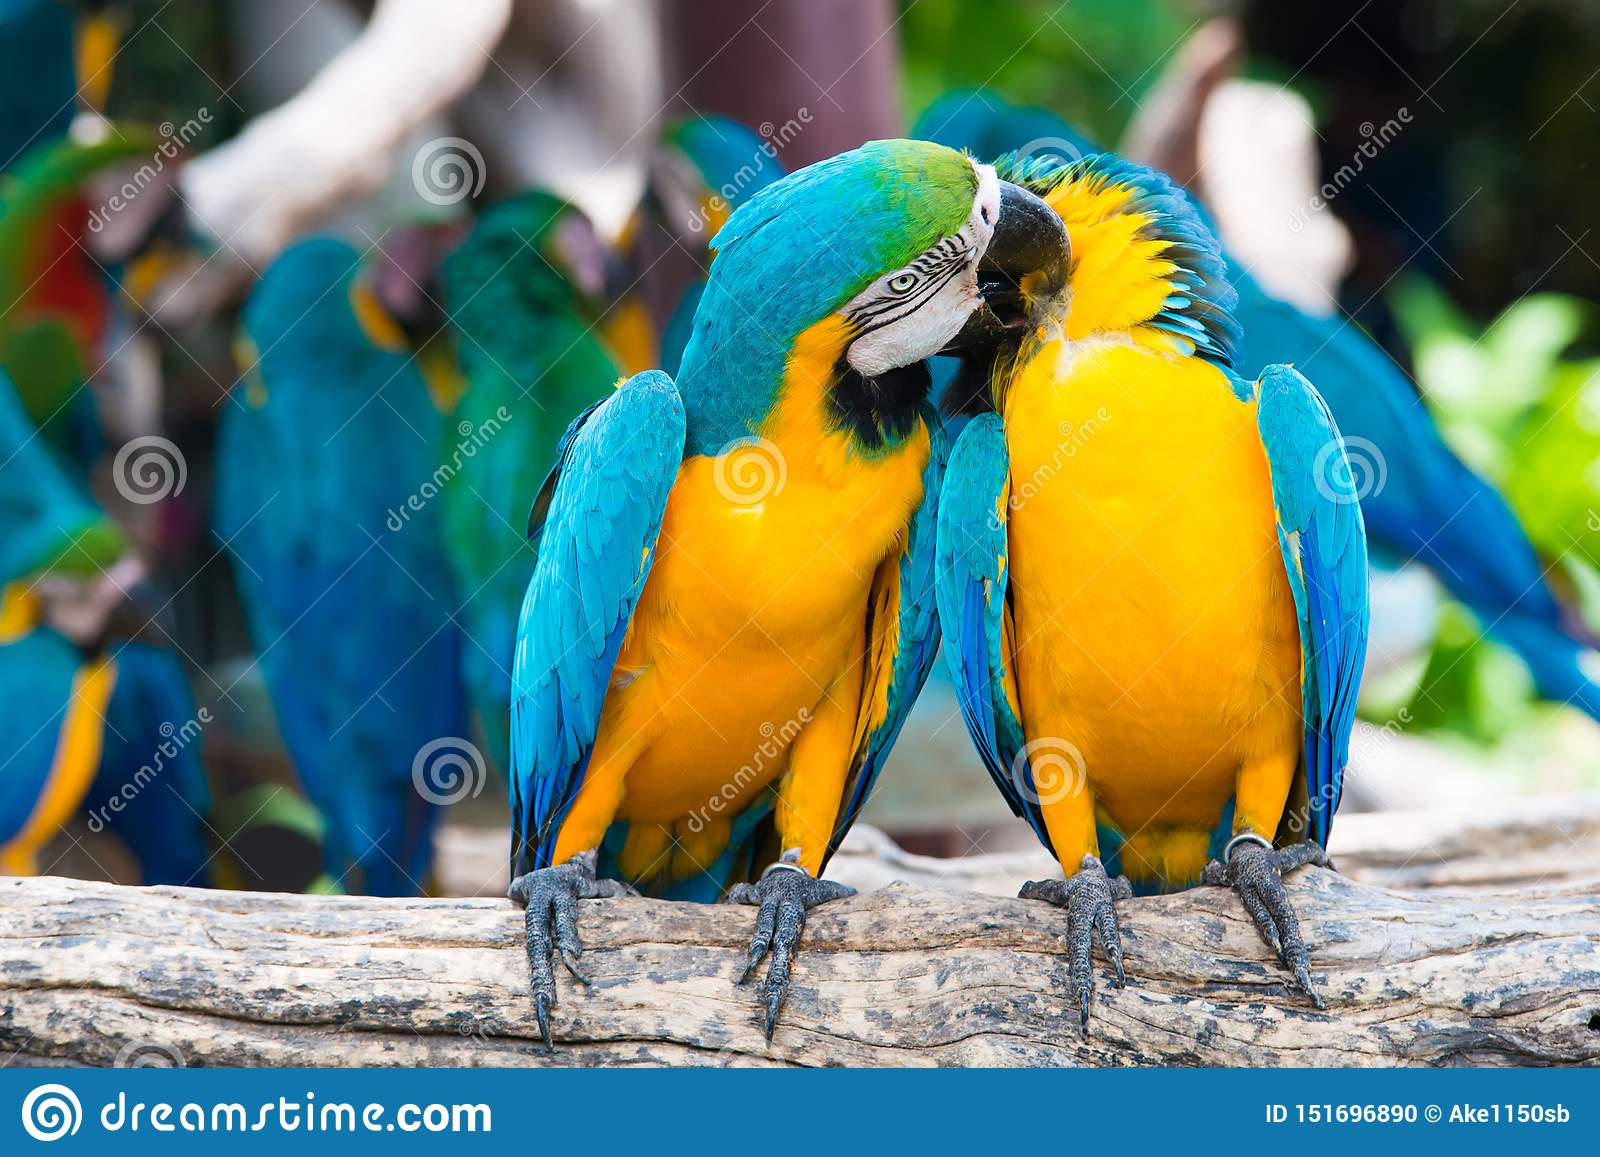 A pair of blue-and-yellow macaws perching at wood branch in jungle. Colorful macaw birds in forest